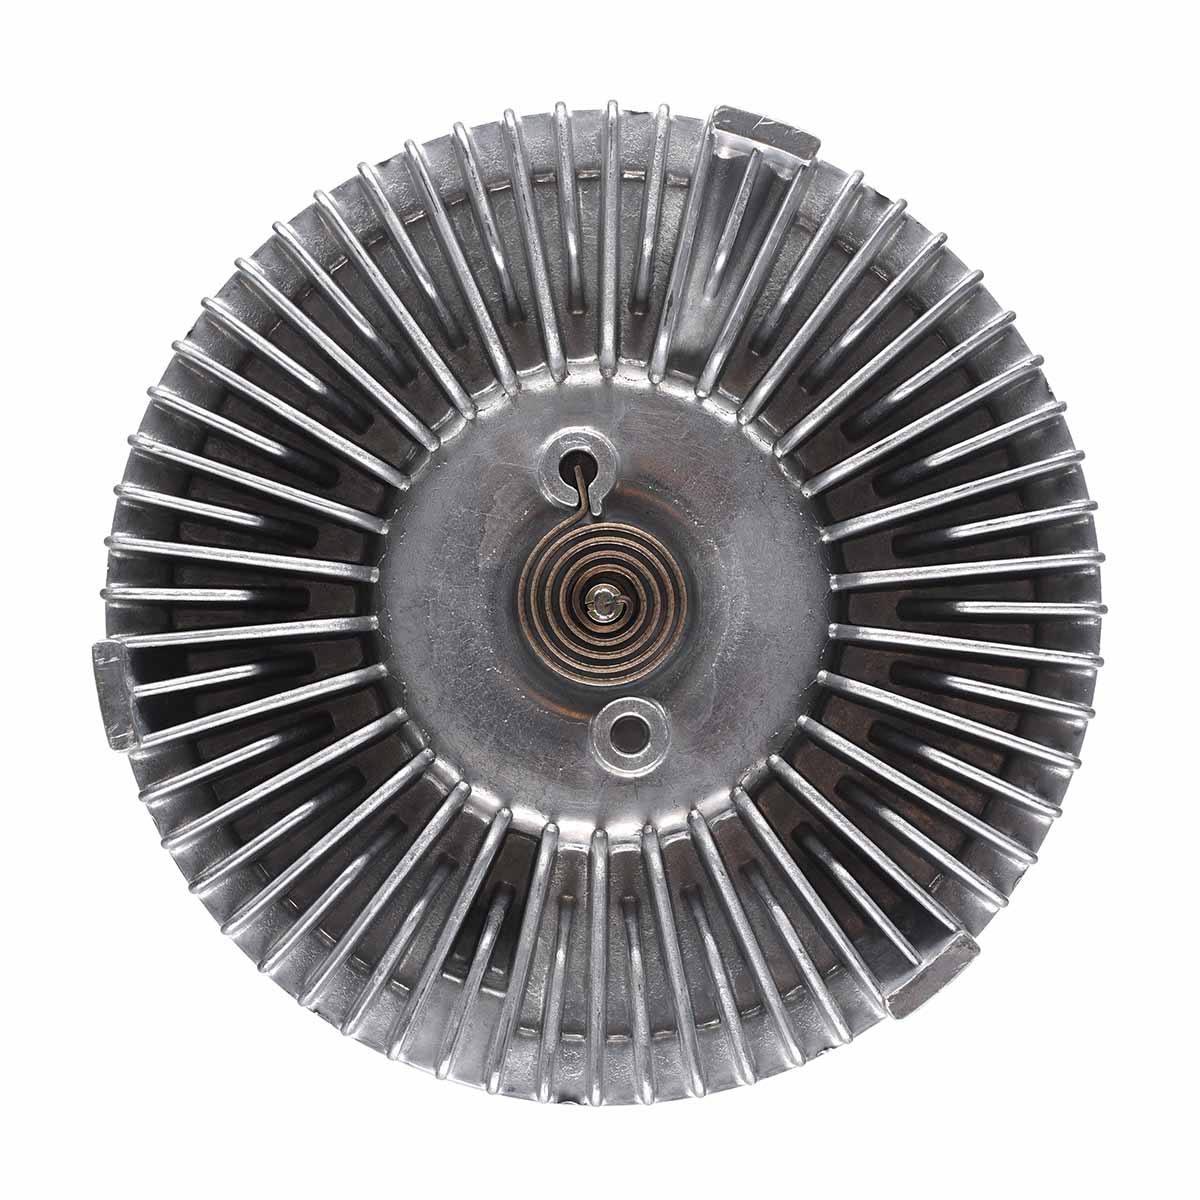 medium resolution of cooling fan clutch for ford crown victoria grand marquis lincoln town car mercury grand marquis 4 6l f6az8a616aa 2795 in fans kits from automobiles